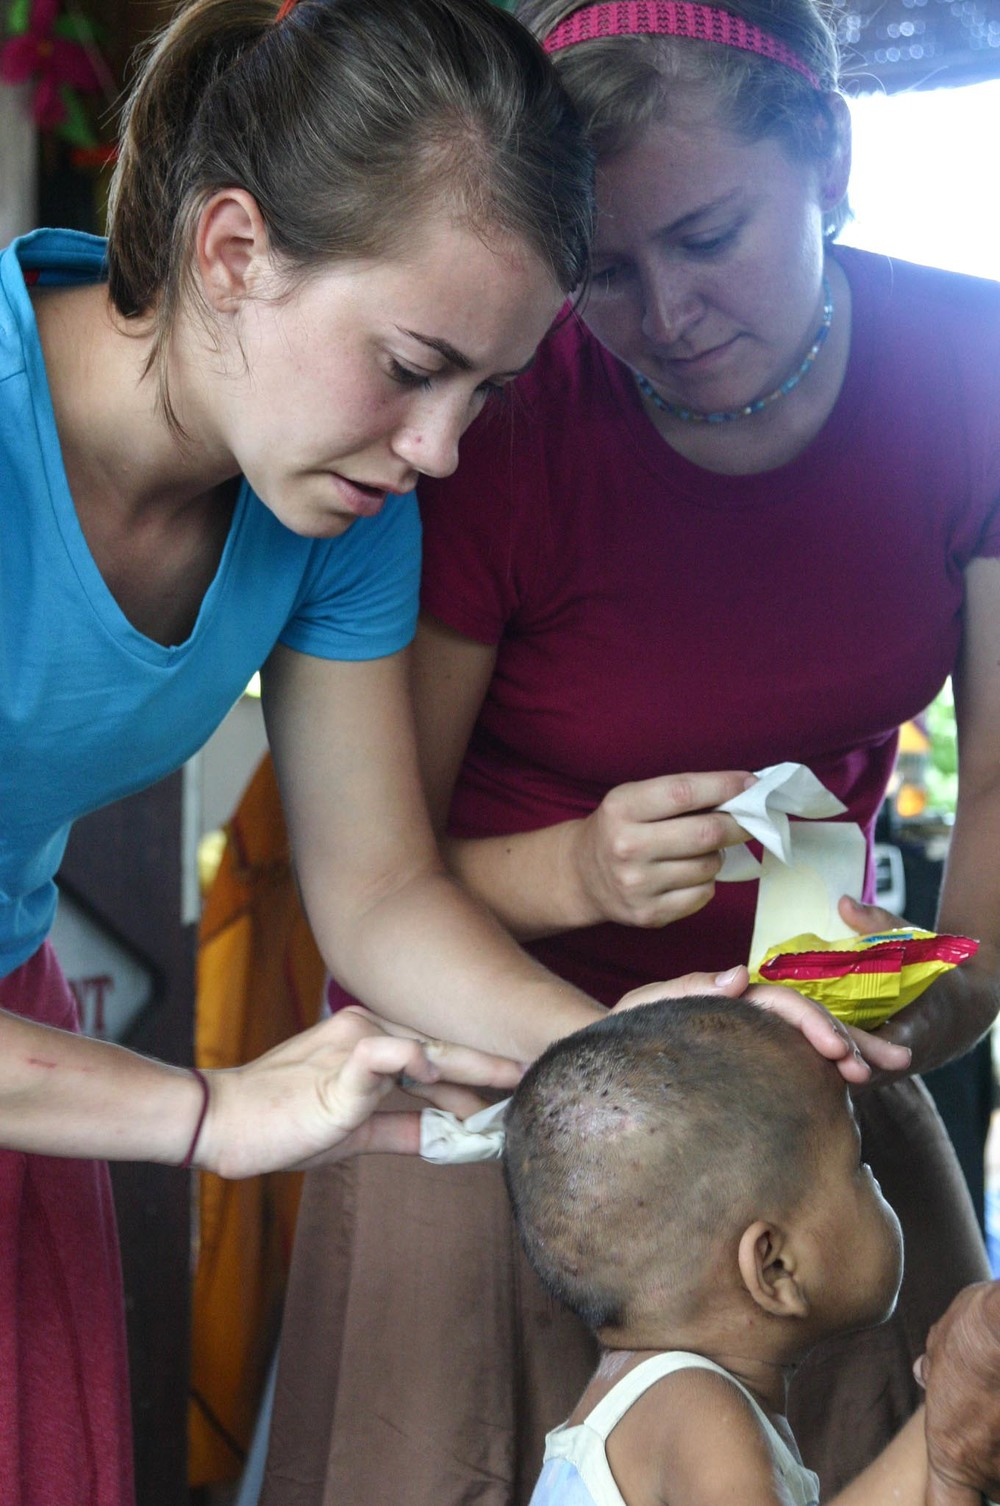 Kathryn Montgomery and Cannon Cameron perform basic wound care on a child living in a squatter village.  Minor cuts and wounds can become major infections in only a few days if not treated properly, which is sadly the case for many children who call these inhumane environments 'home'.